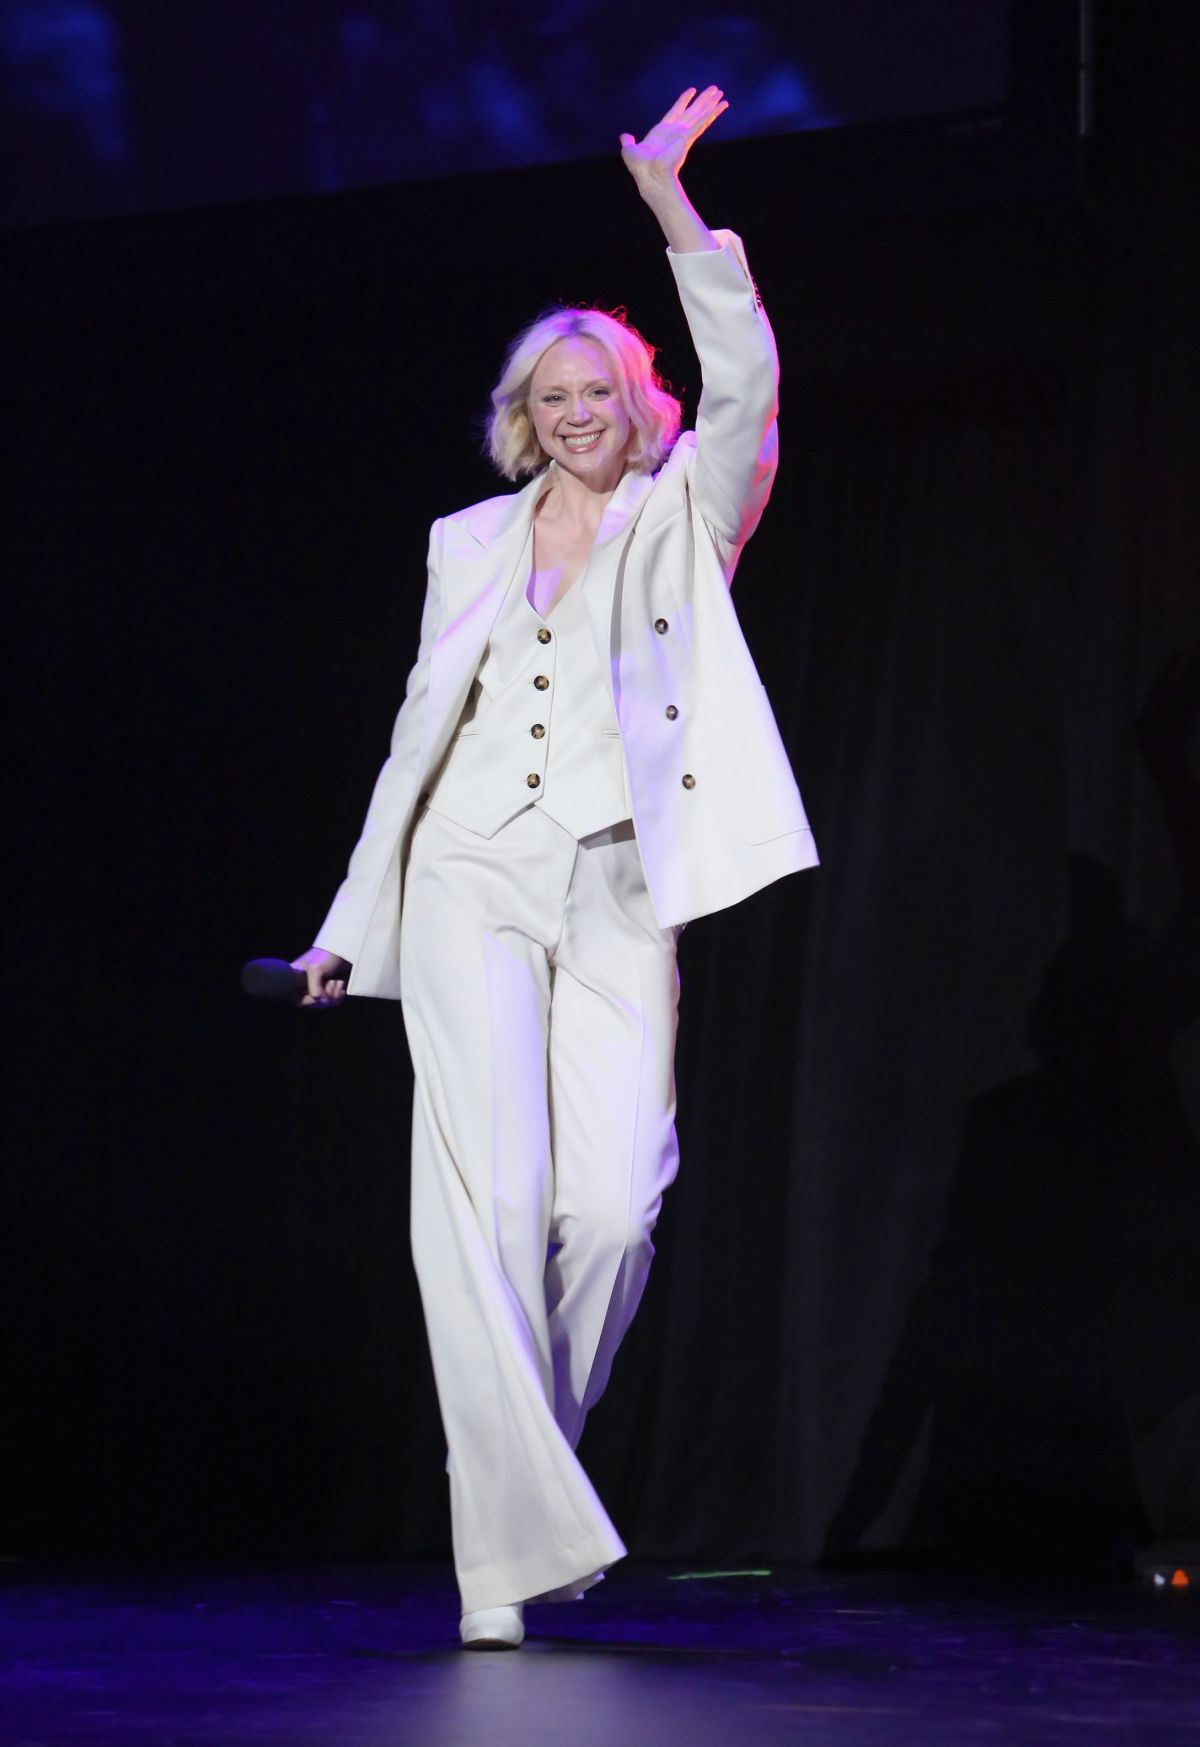 GWENDOLINE CHRISTIE at Disney's D23 Expo 2017 in Anaheim 07/15/2017   gwendoline-christie-at-disney-s-d23-expo-2017-in-anaheim-07-15-2017_3